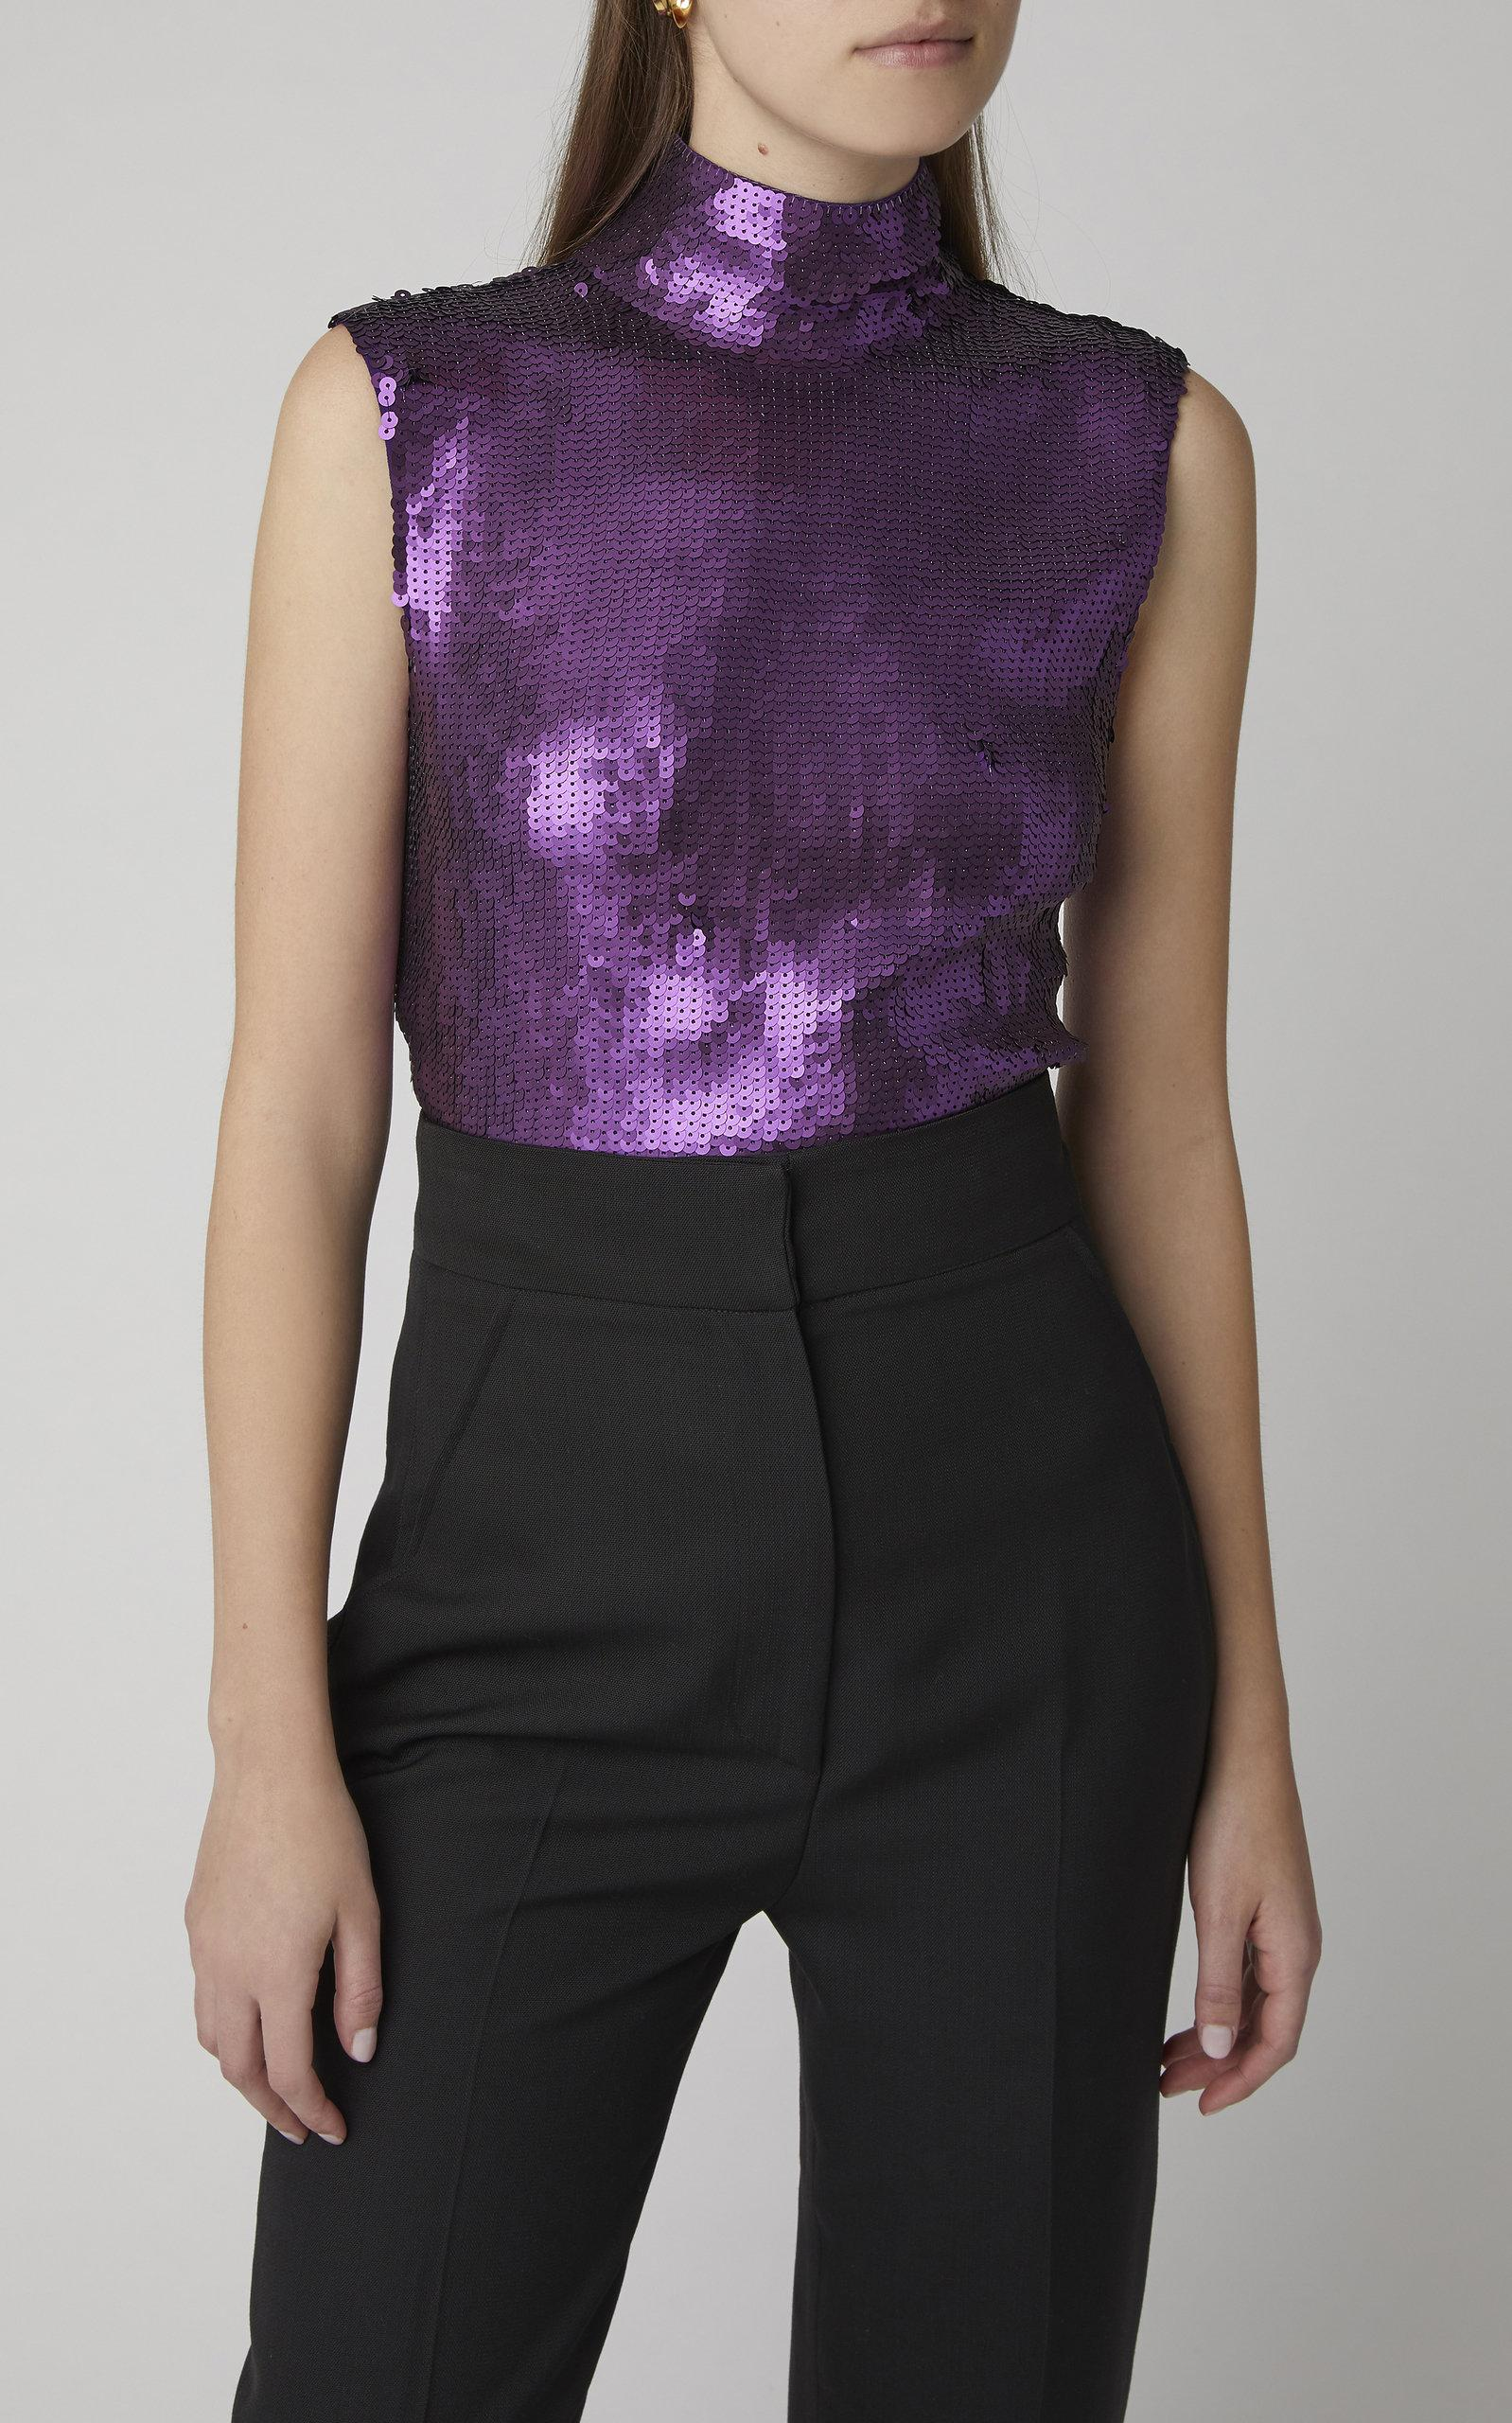 ff9ef67639e22 Tibi - Purple Sequin Turtleneck Shell Top - Lyst. View fullscreen